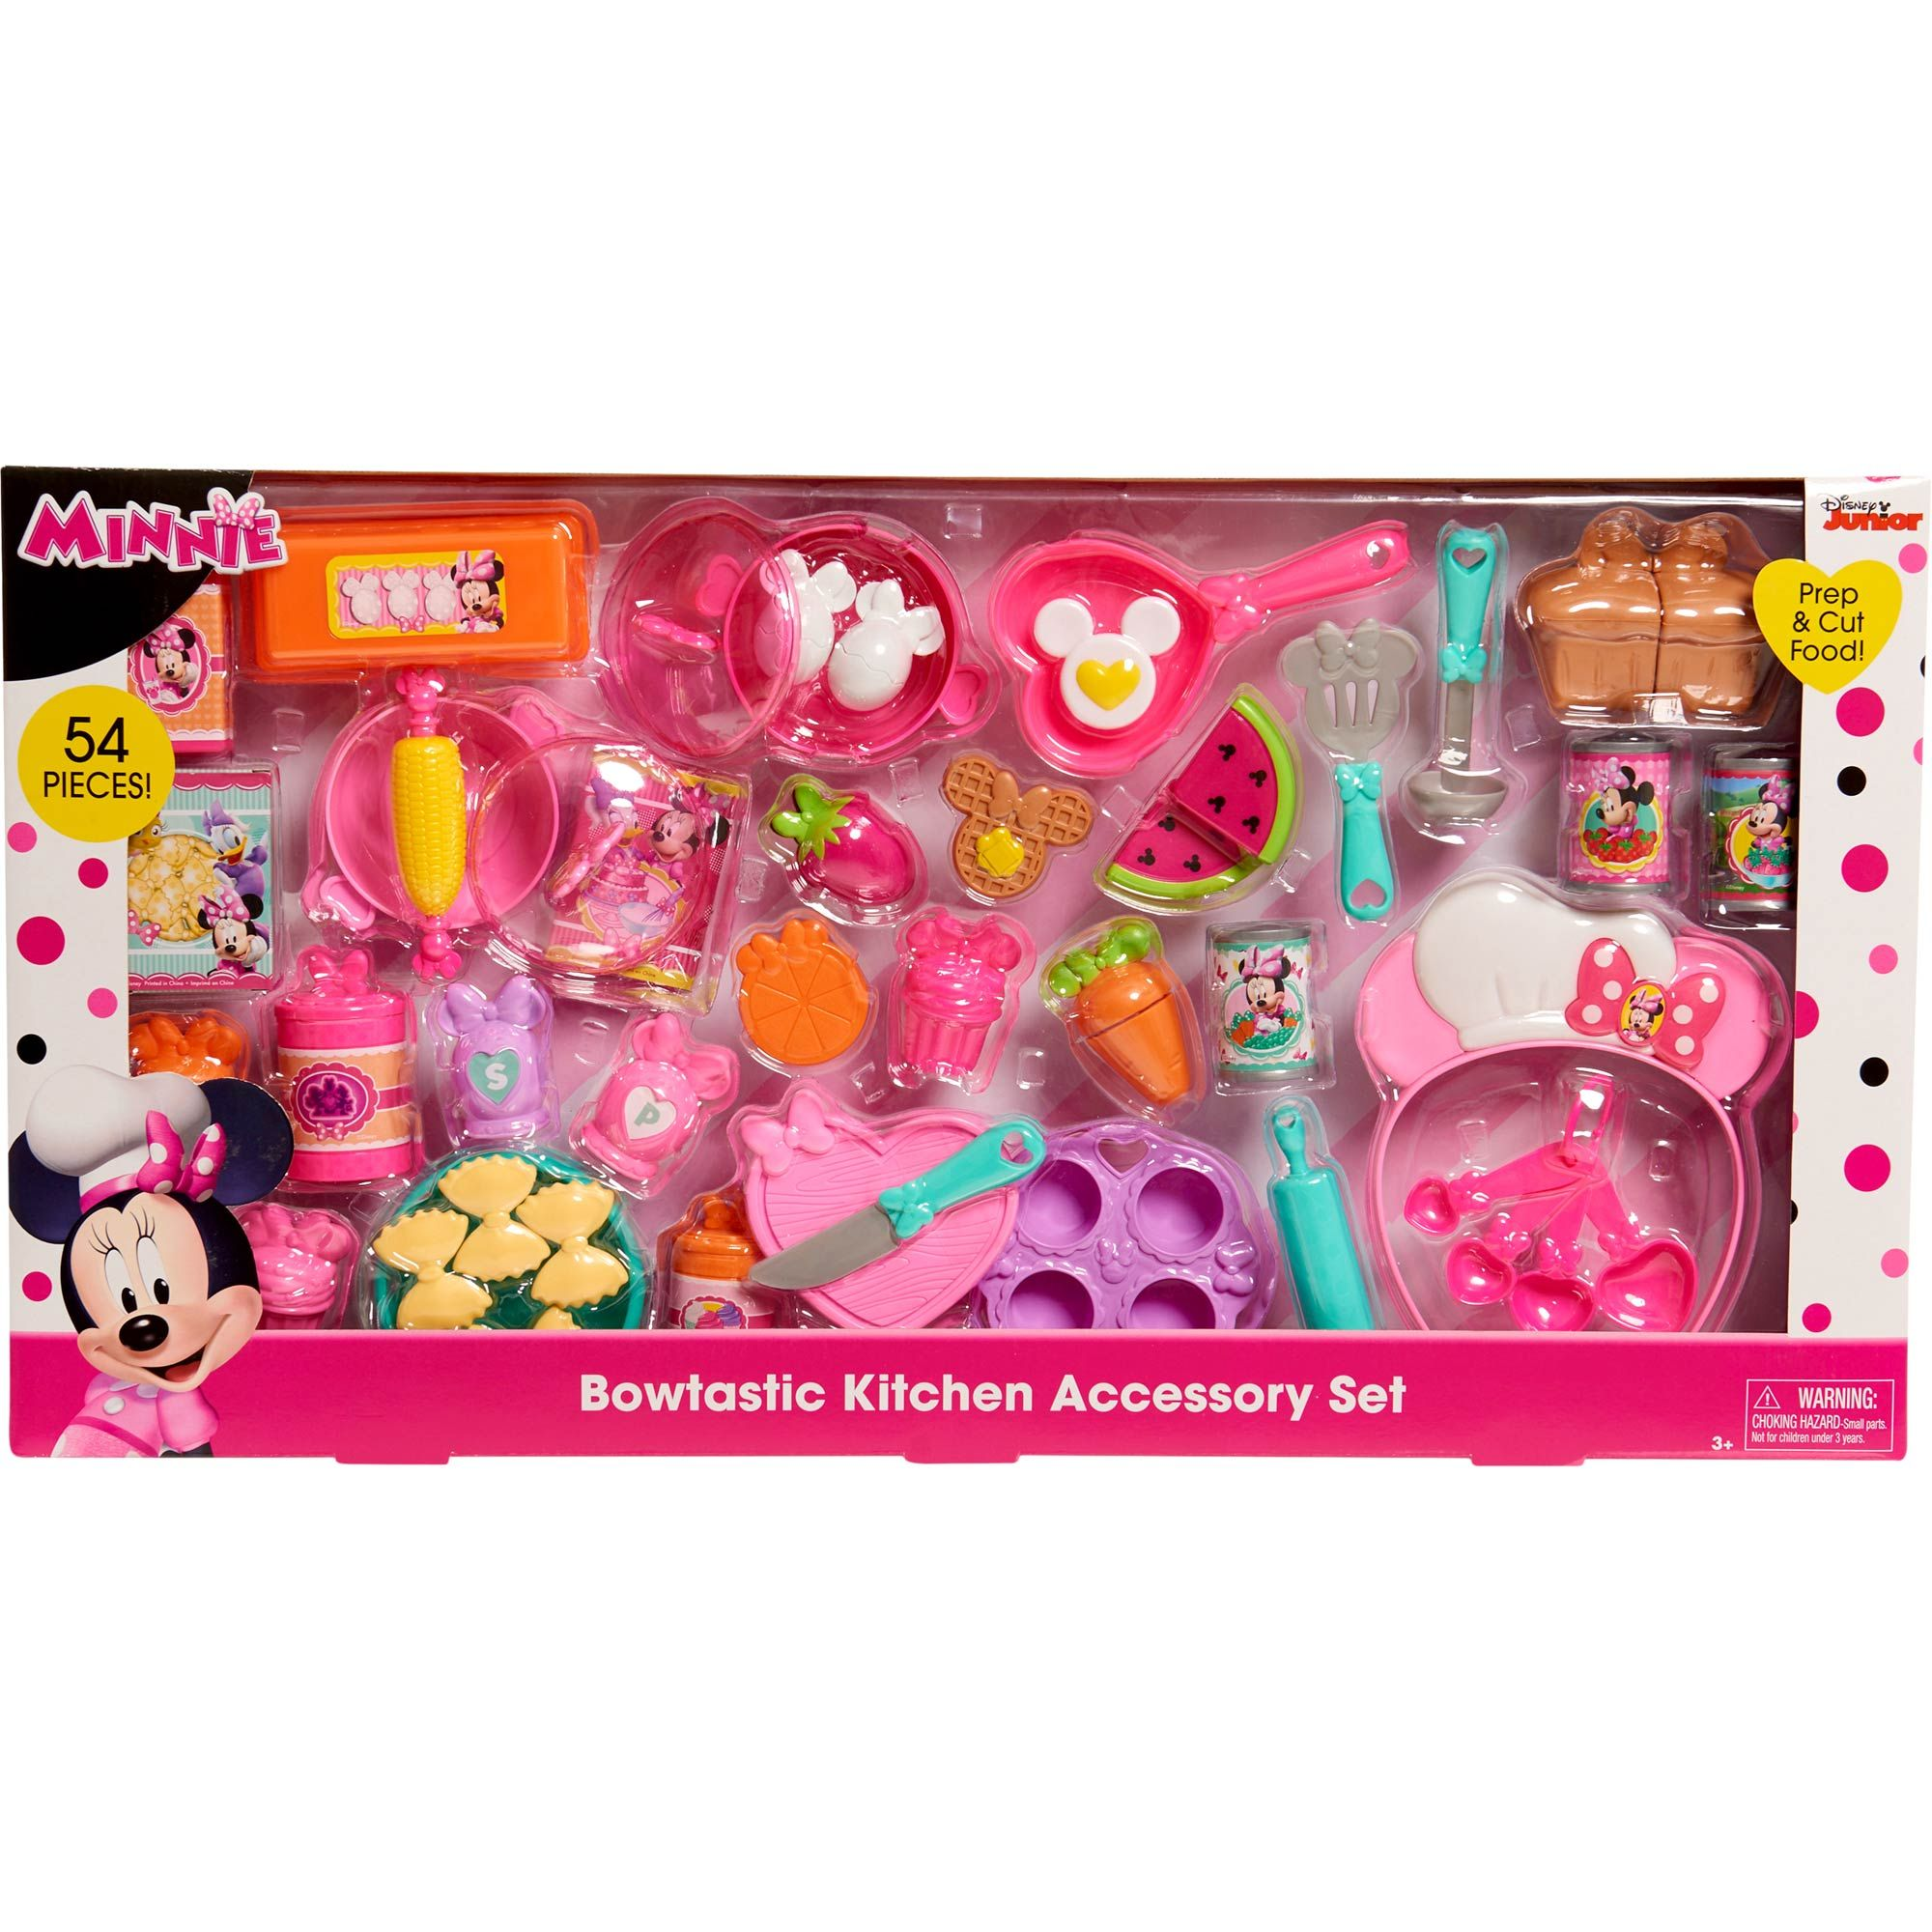 Disney Minnie Mouse Bowtastic Kitchen Accessory Set Baby Toy Shop Minnie Mouse Toys Little Girl Toys